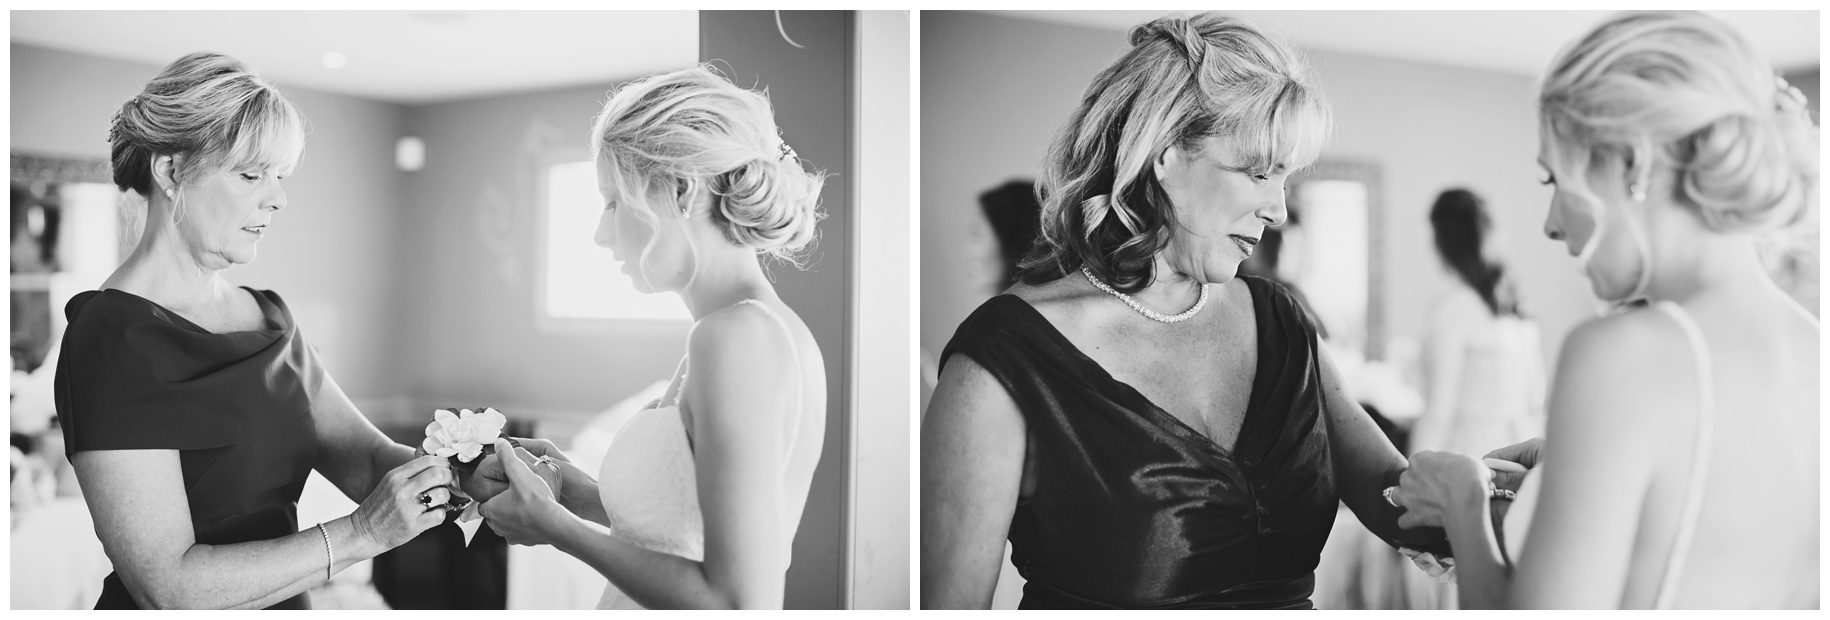 maineweddingphotographer_saco_coast_beach-006